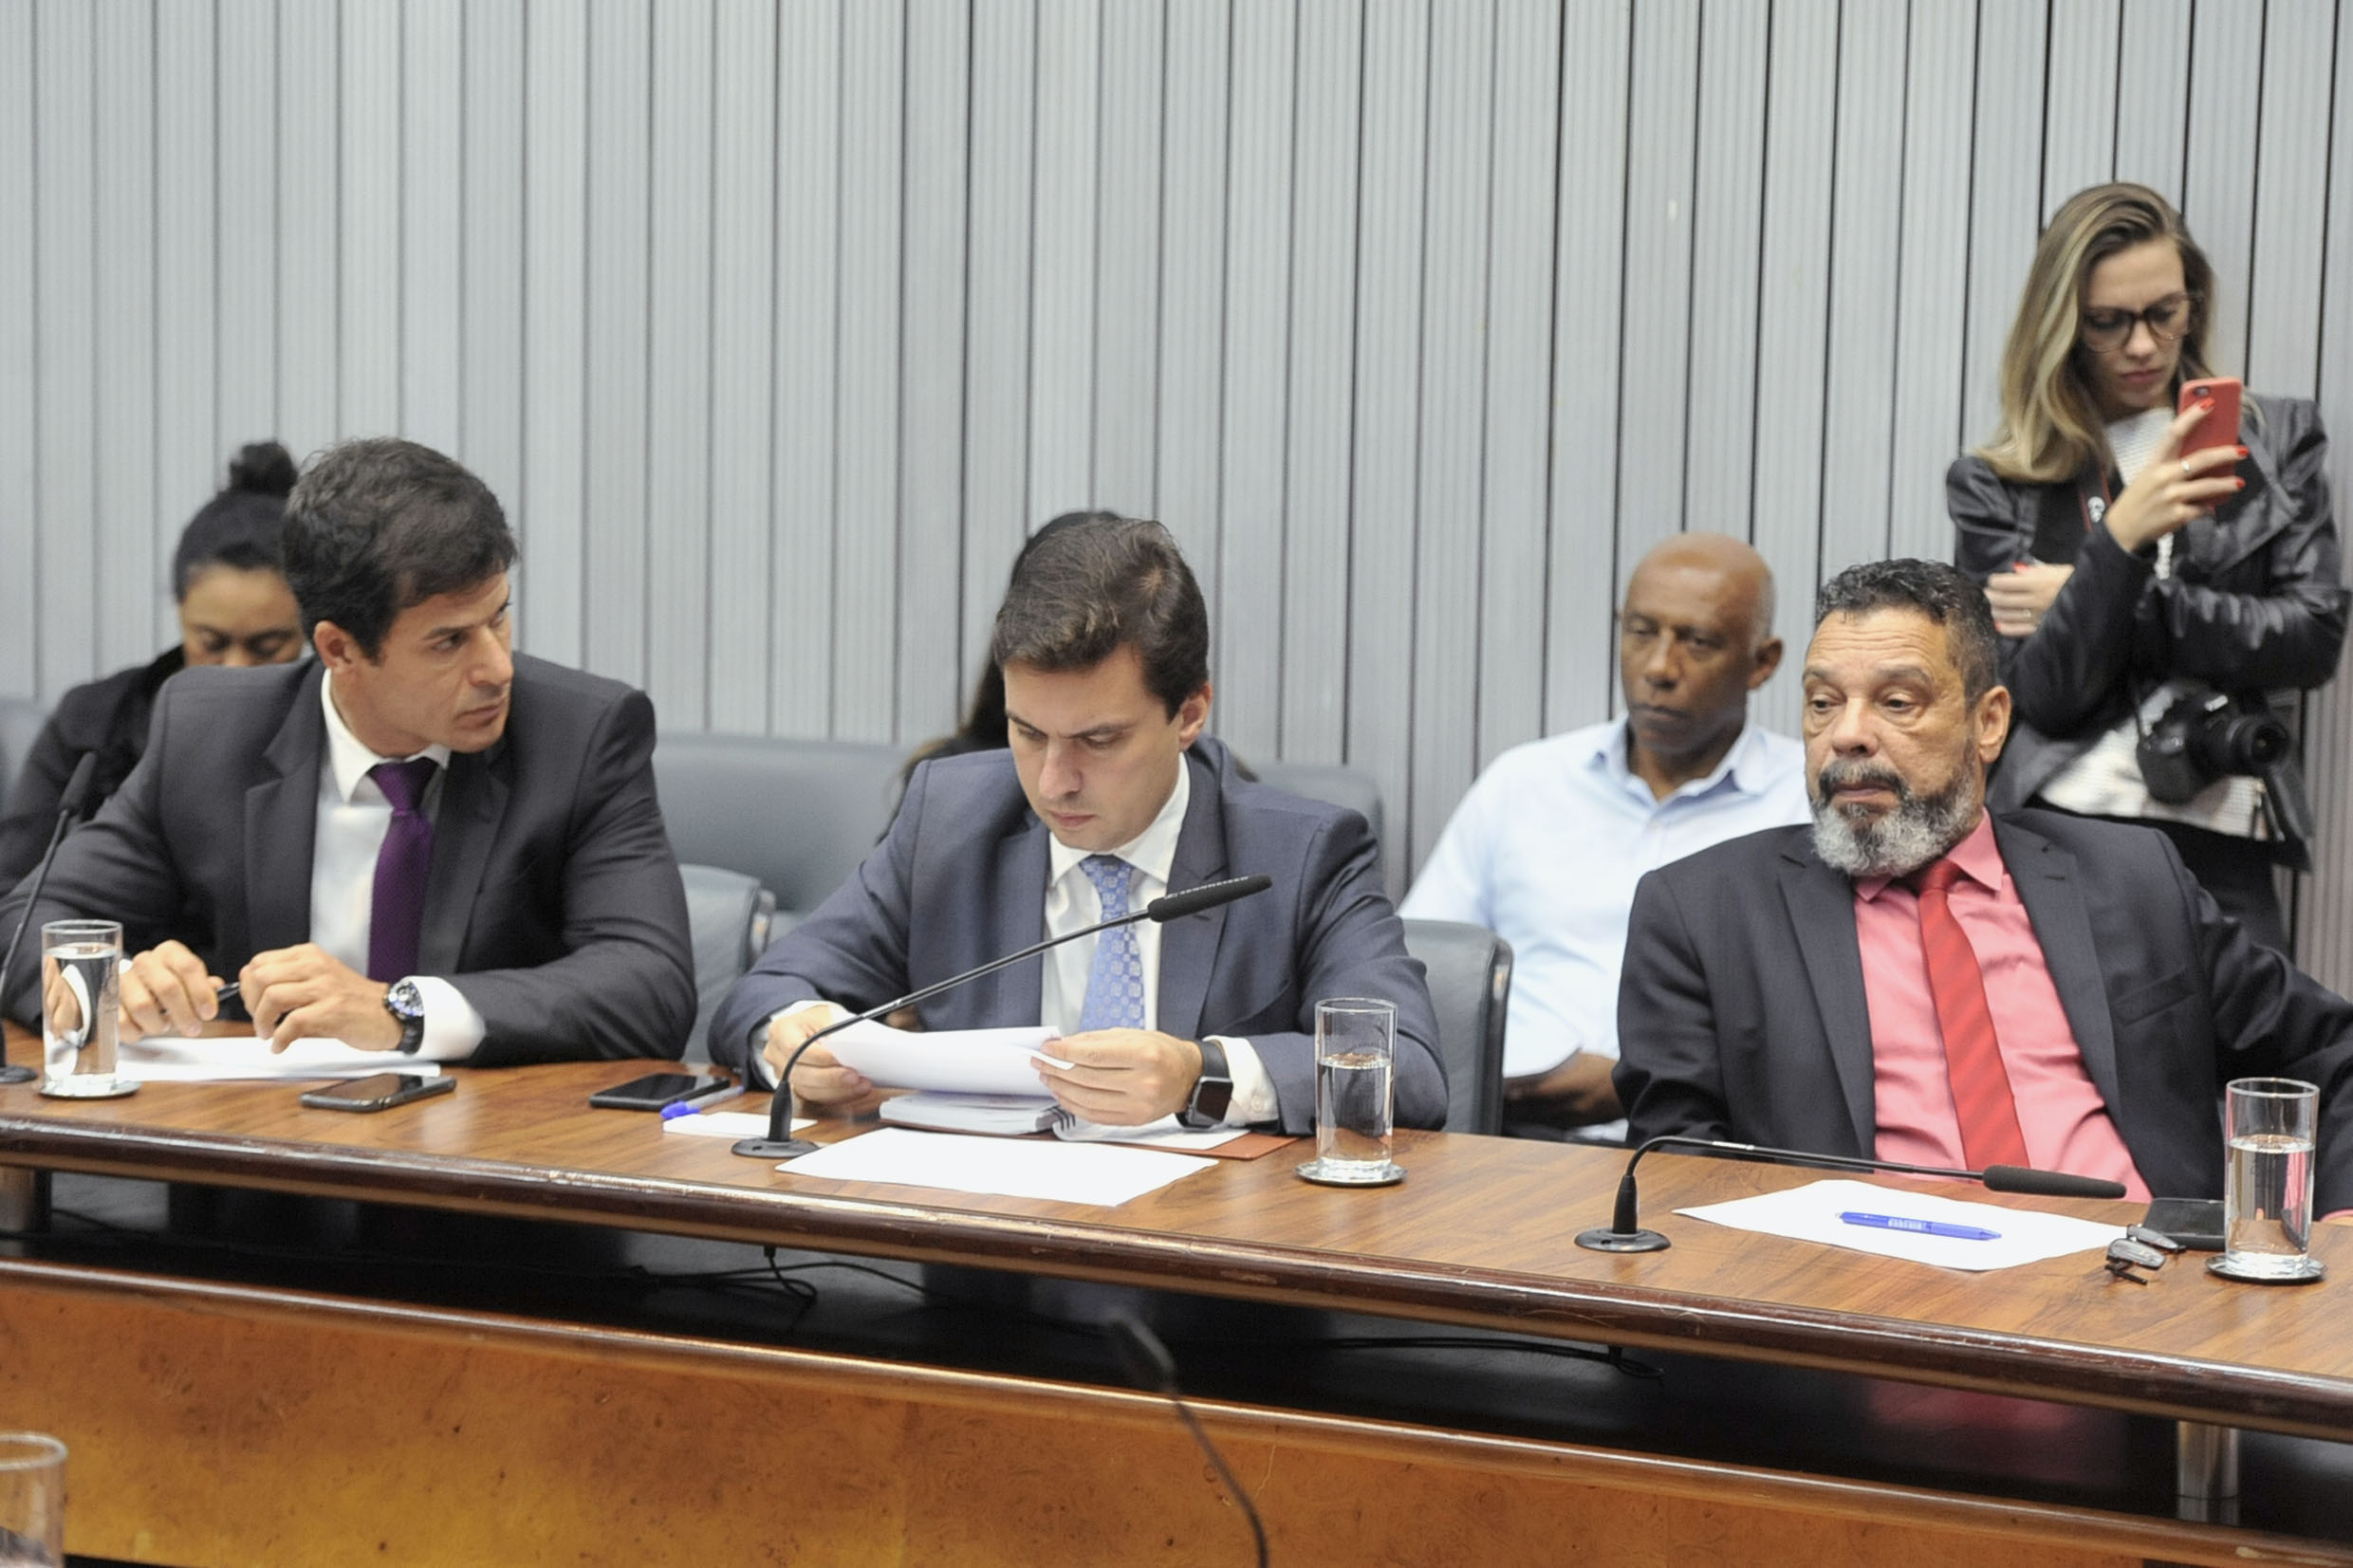 Parlamentares na comissão<a style='float:right' href='https://www3.al.sp.gov.br/repositorio/noticia/N-05-2019/fg234193.jpg' target=_blank><img src='/_img/material-file-download-white.png' width='14px' alt='Clique para baixar a imagem'></a>